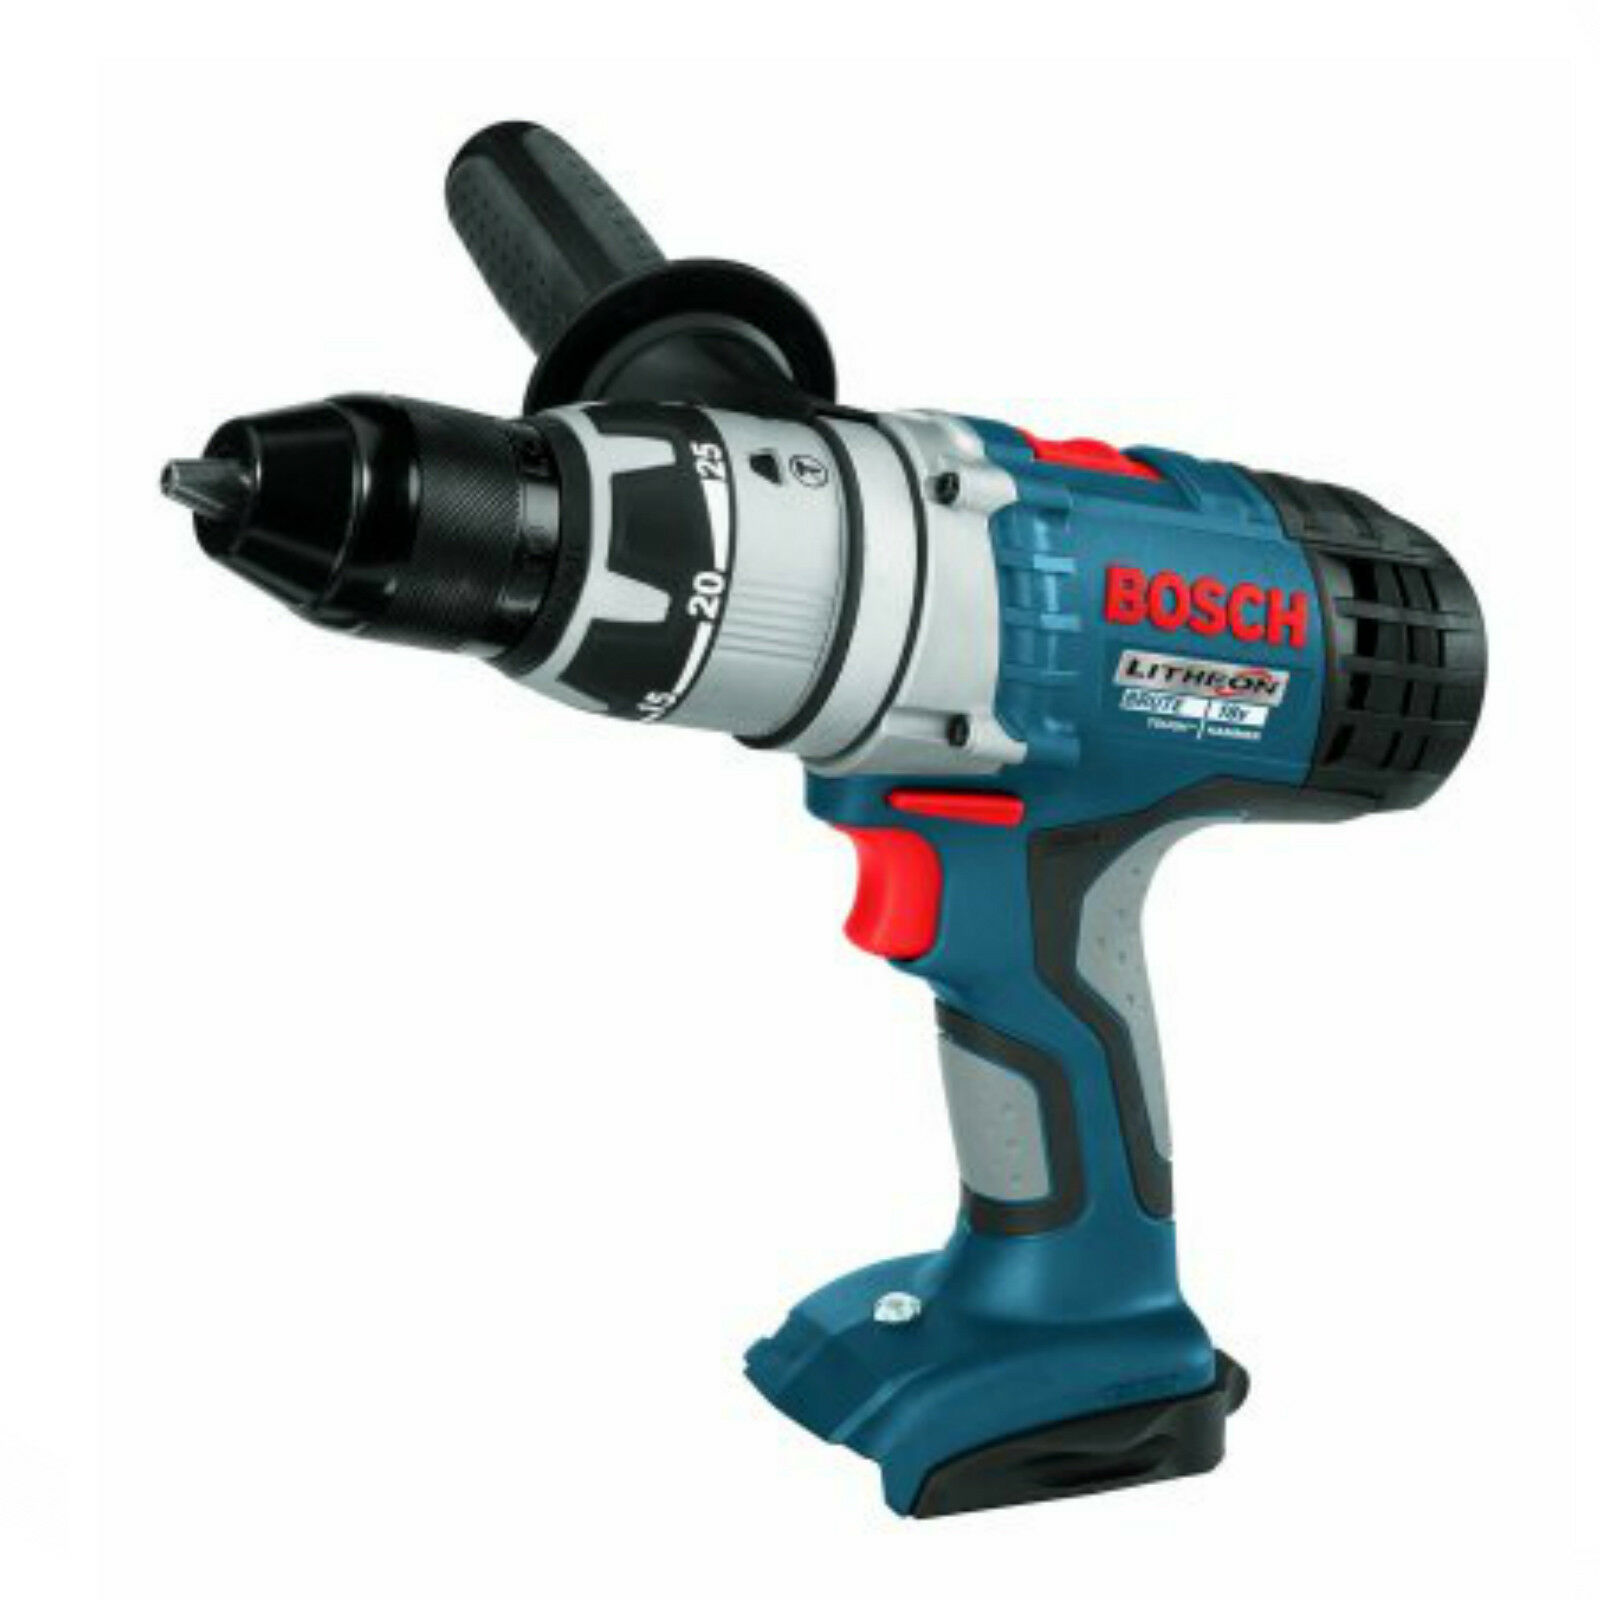 Bosch 17618 Bare Tool 18-Volt 1/2-Inch Brute Tough Drill/Driver w/Full Warranty